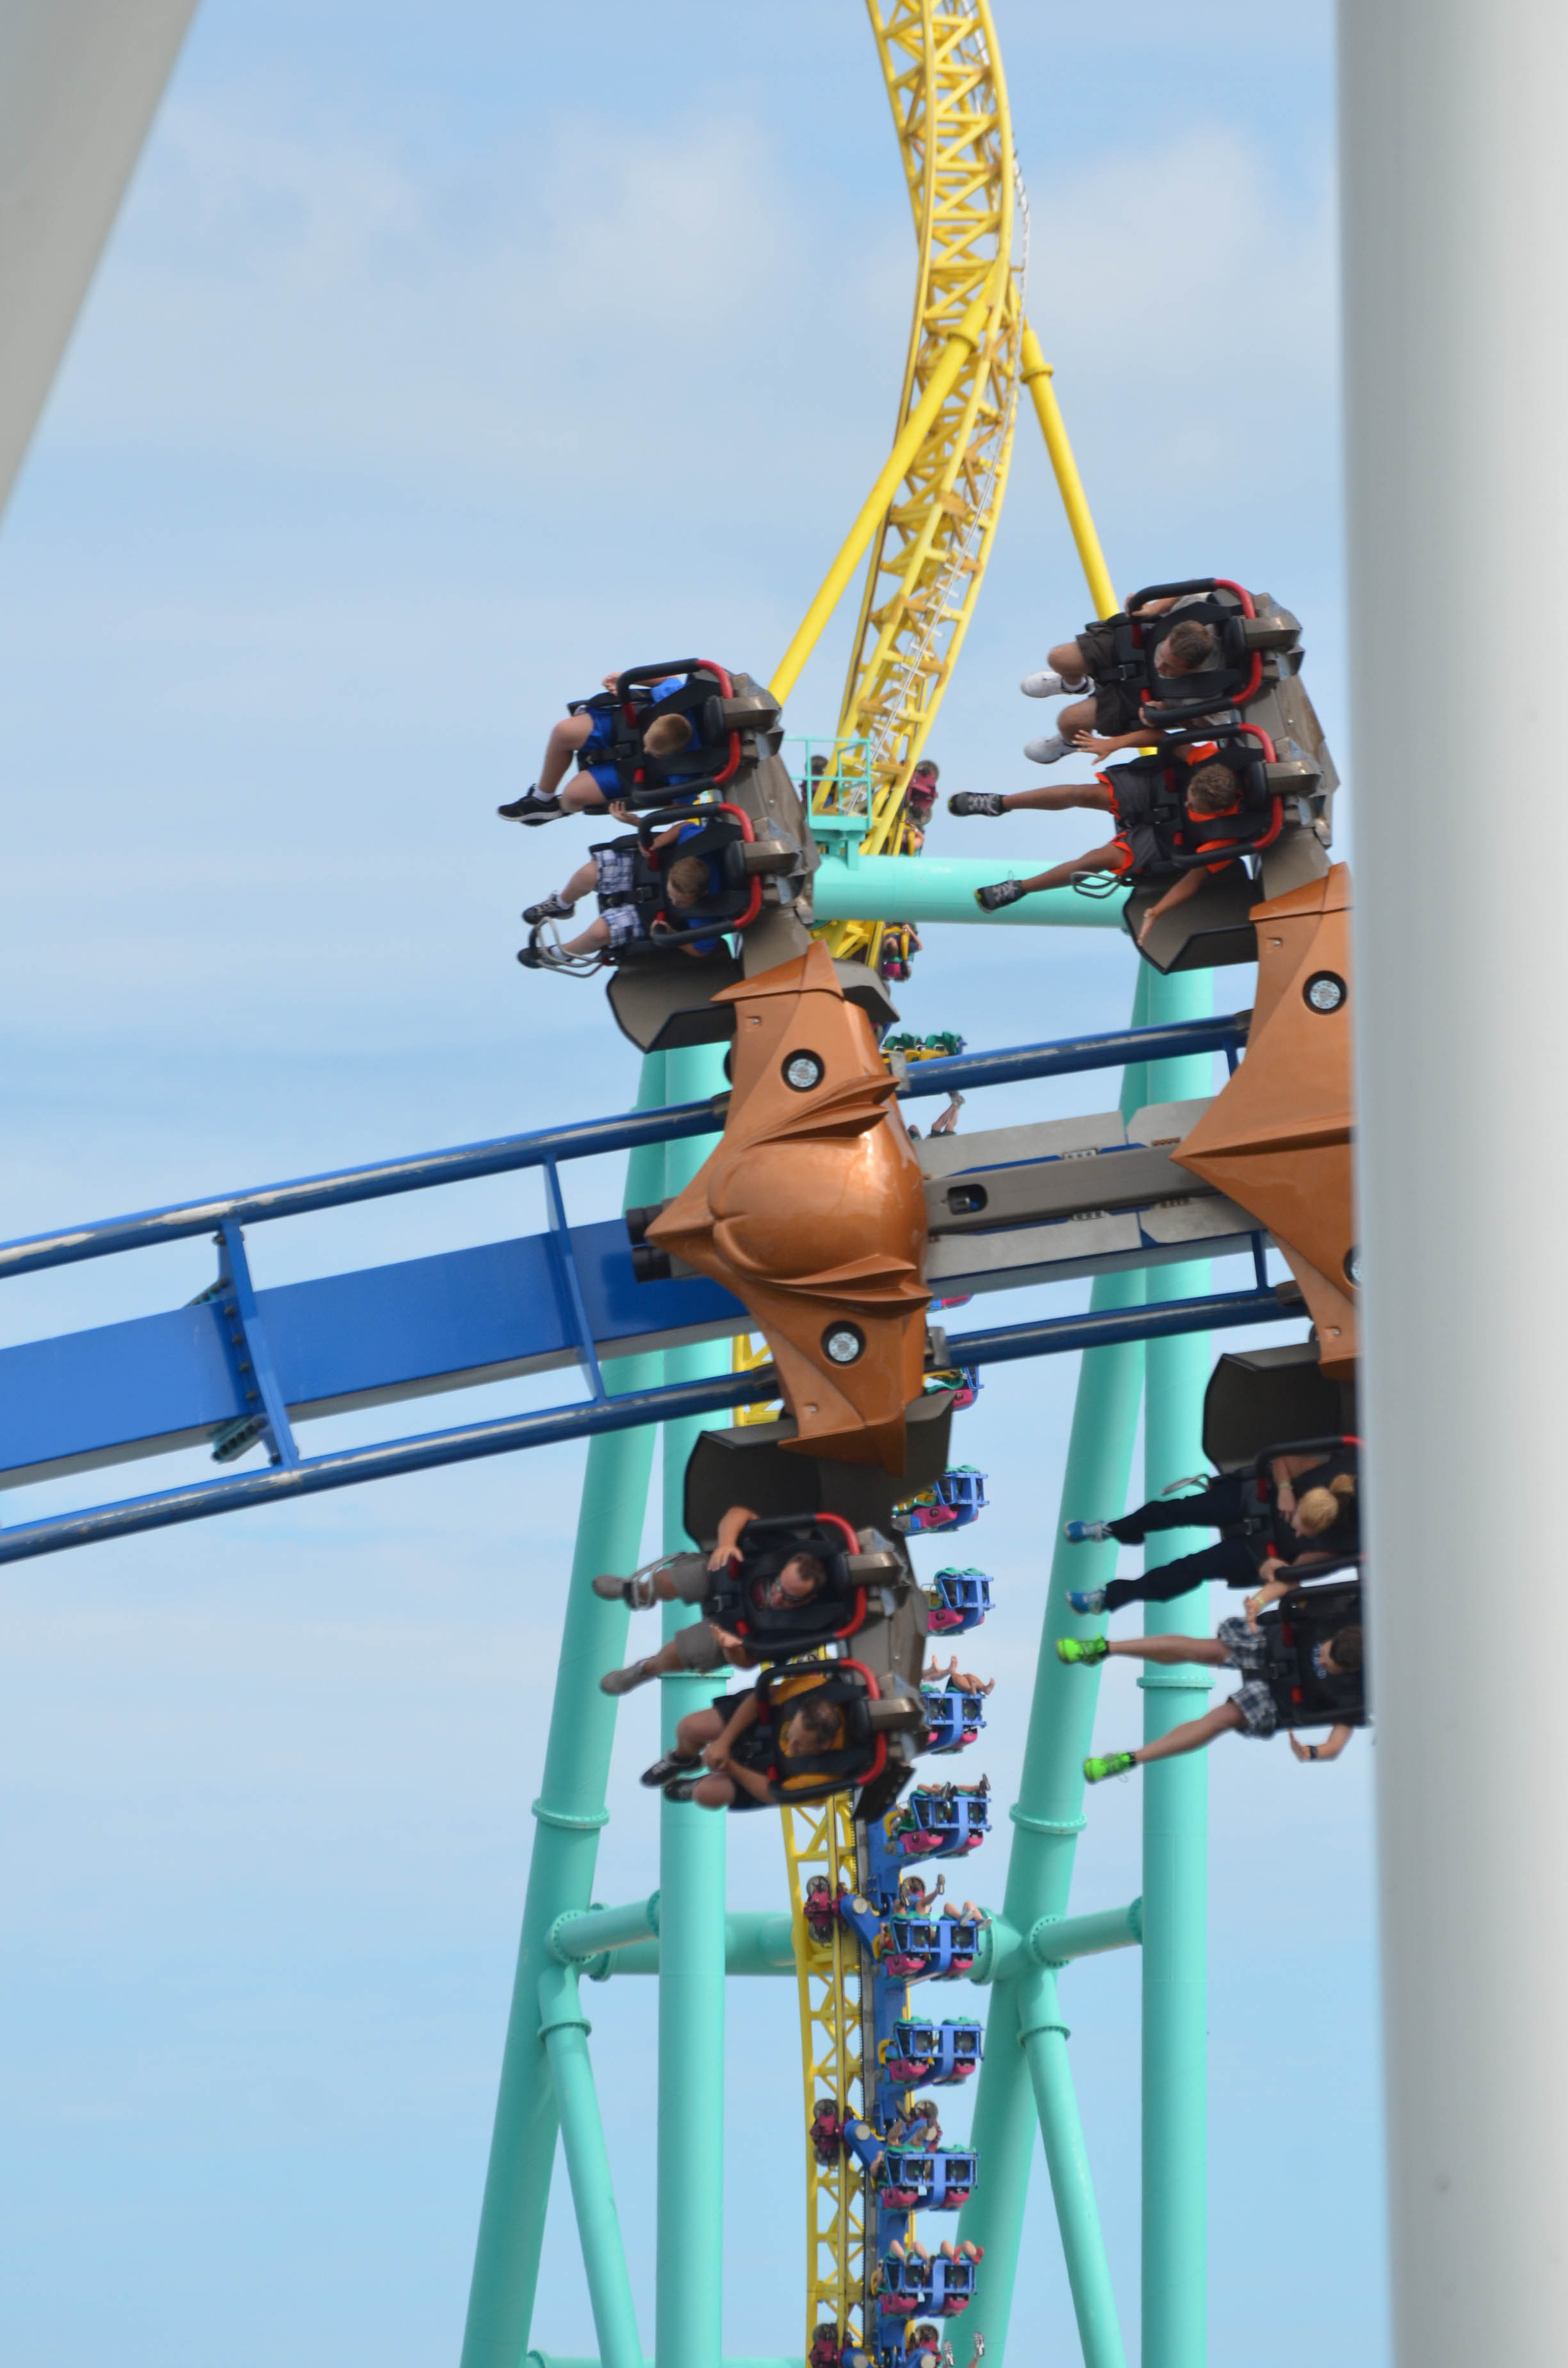 cedar point amusement park essay This is a sales pitch on why our family should choose cedar point as there amusement park of choice for vacation.